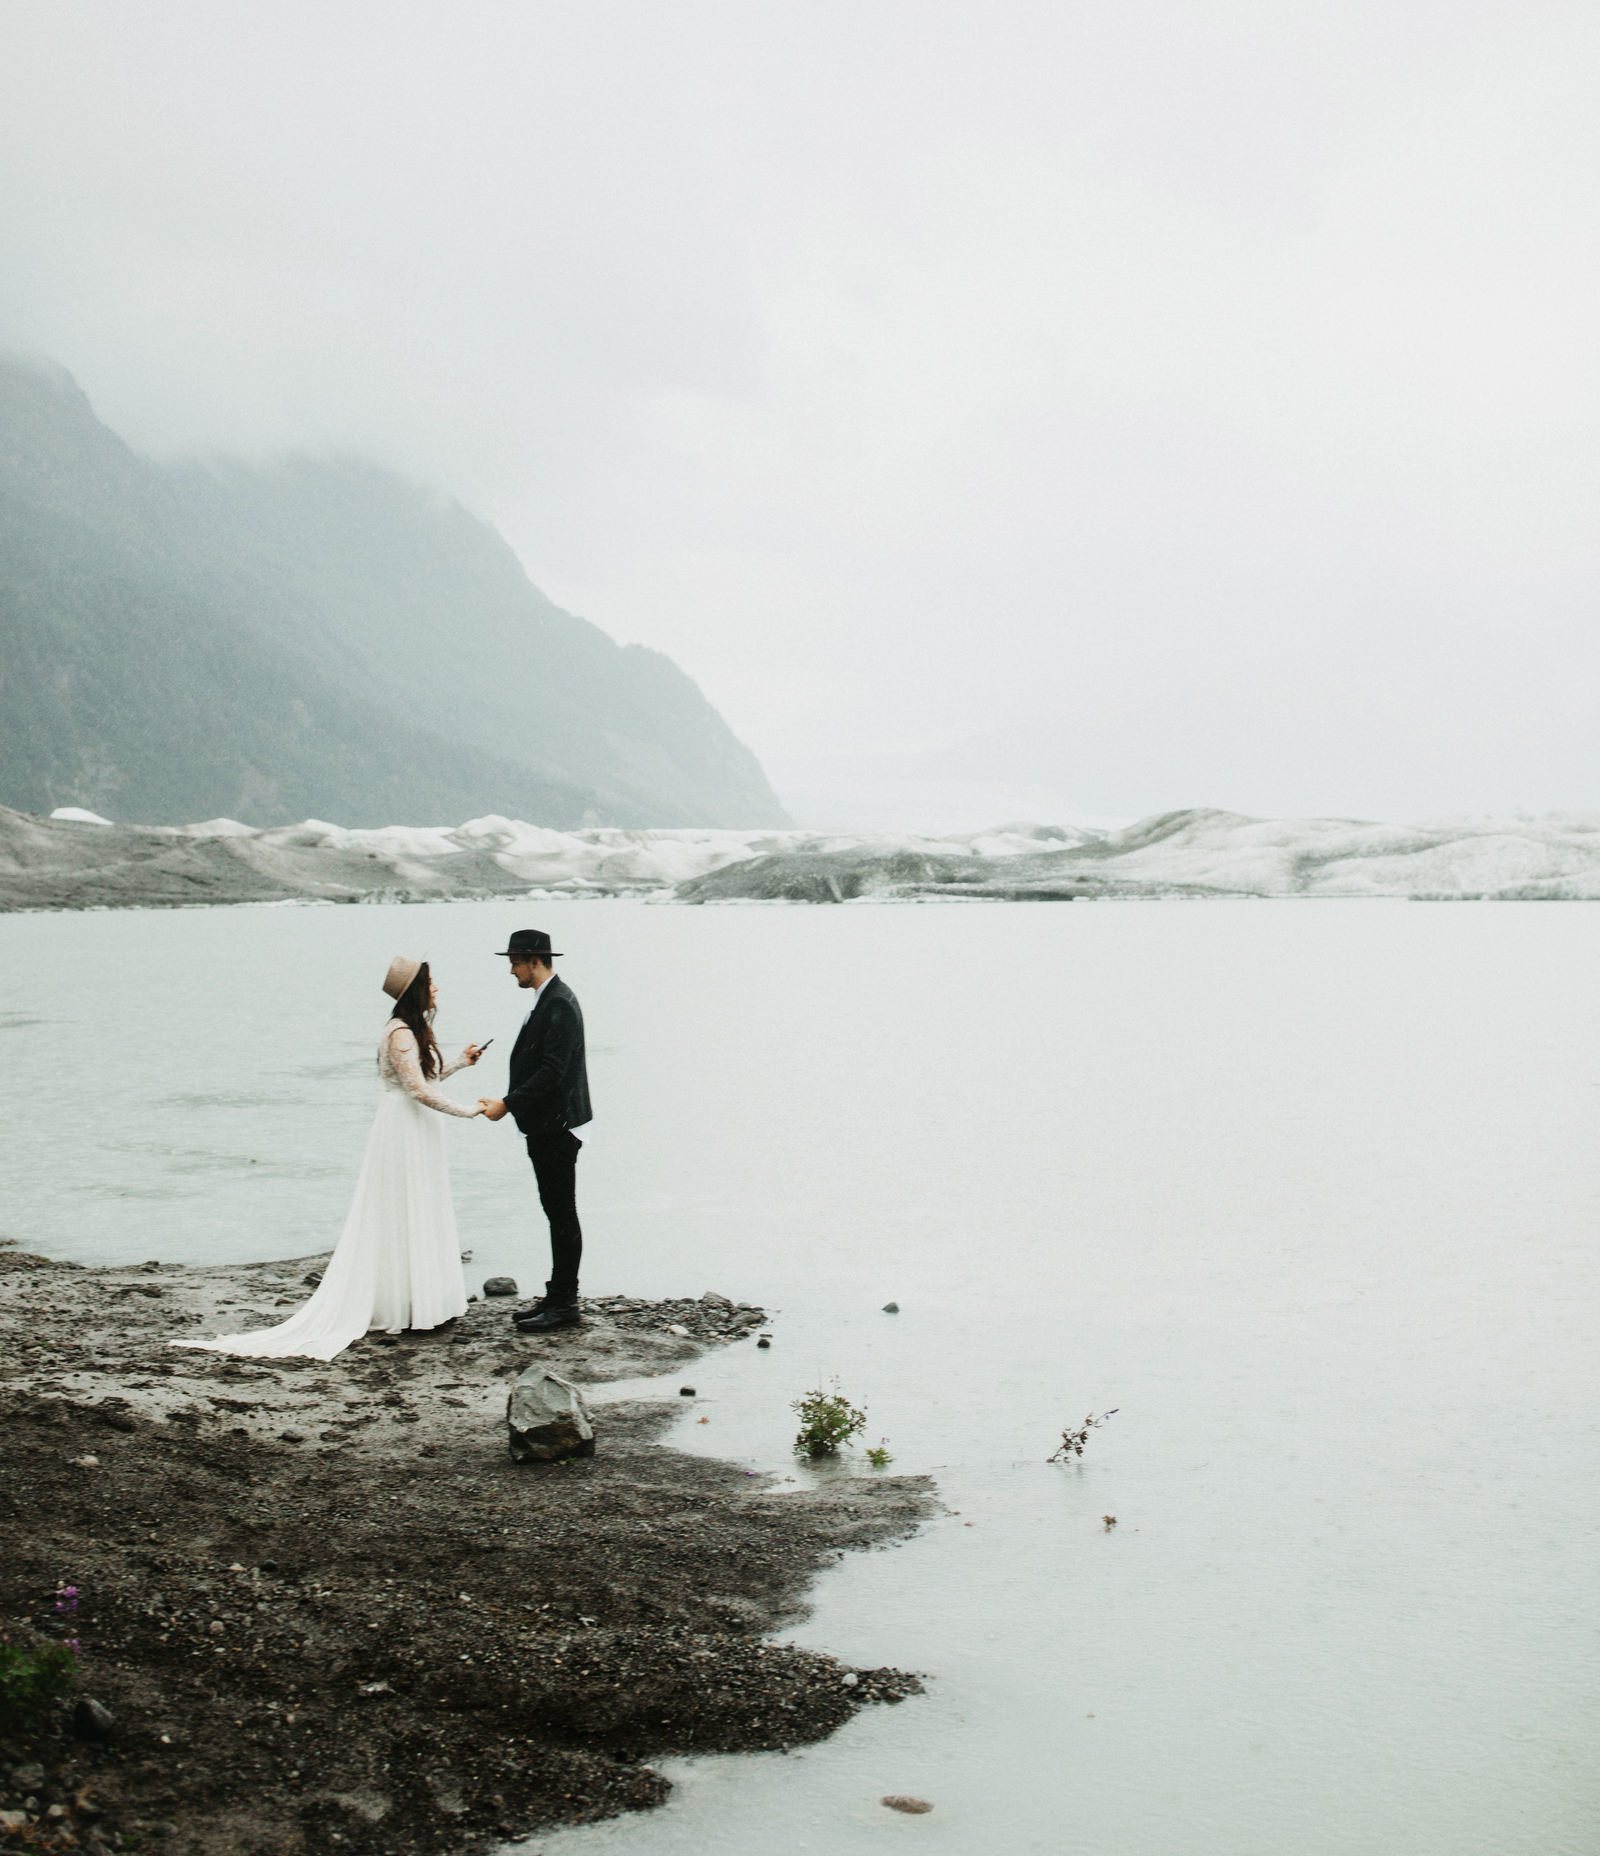 athena-and-camron-alaska-elopement-wedding-inspiration-india-earl-athena-grace-glacier-lagoon-wedding76